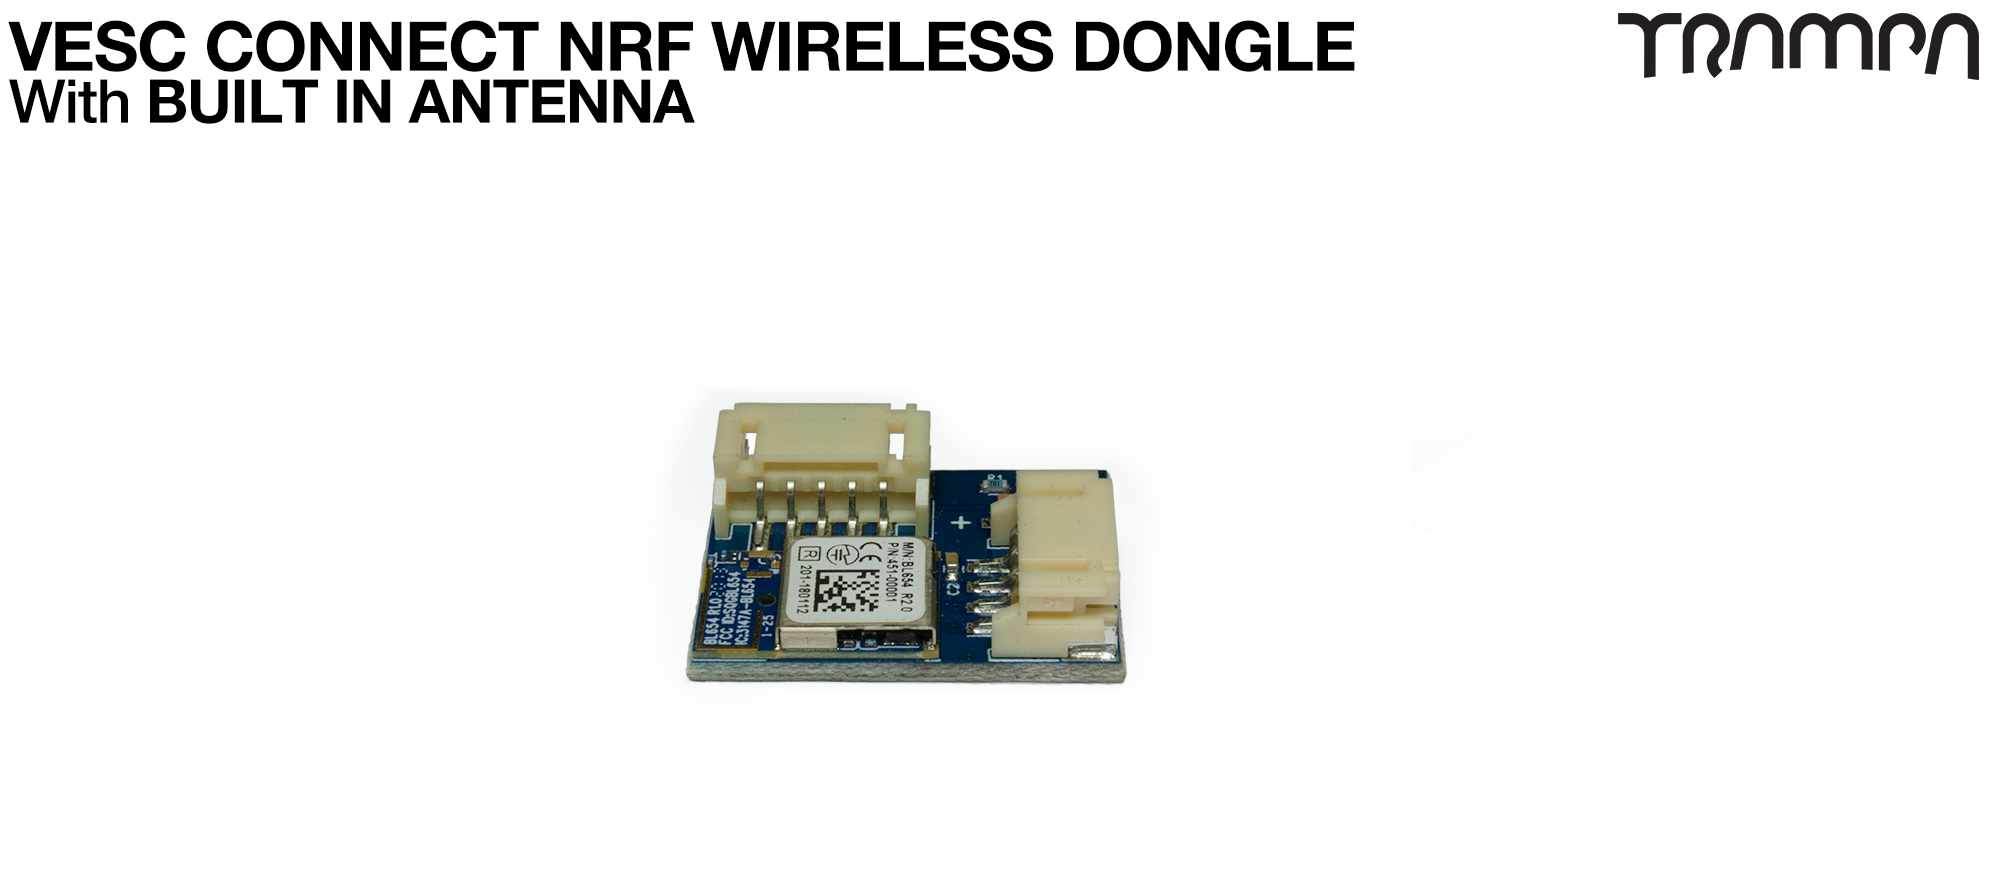 Yes please supply me with a Wireless NRF VESC Connect Dongle (+£27.50)